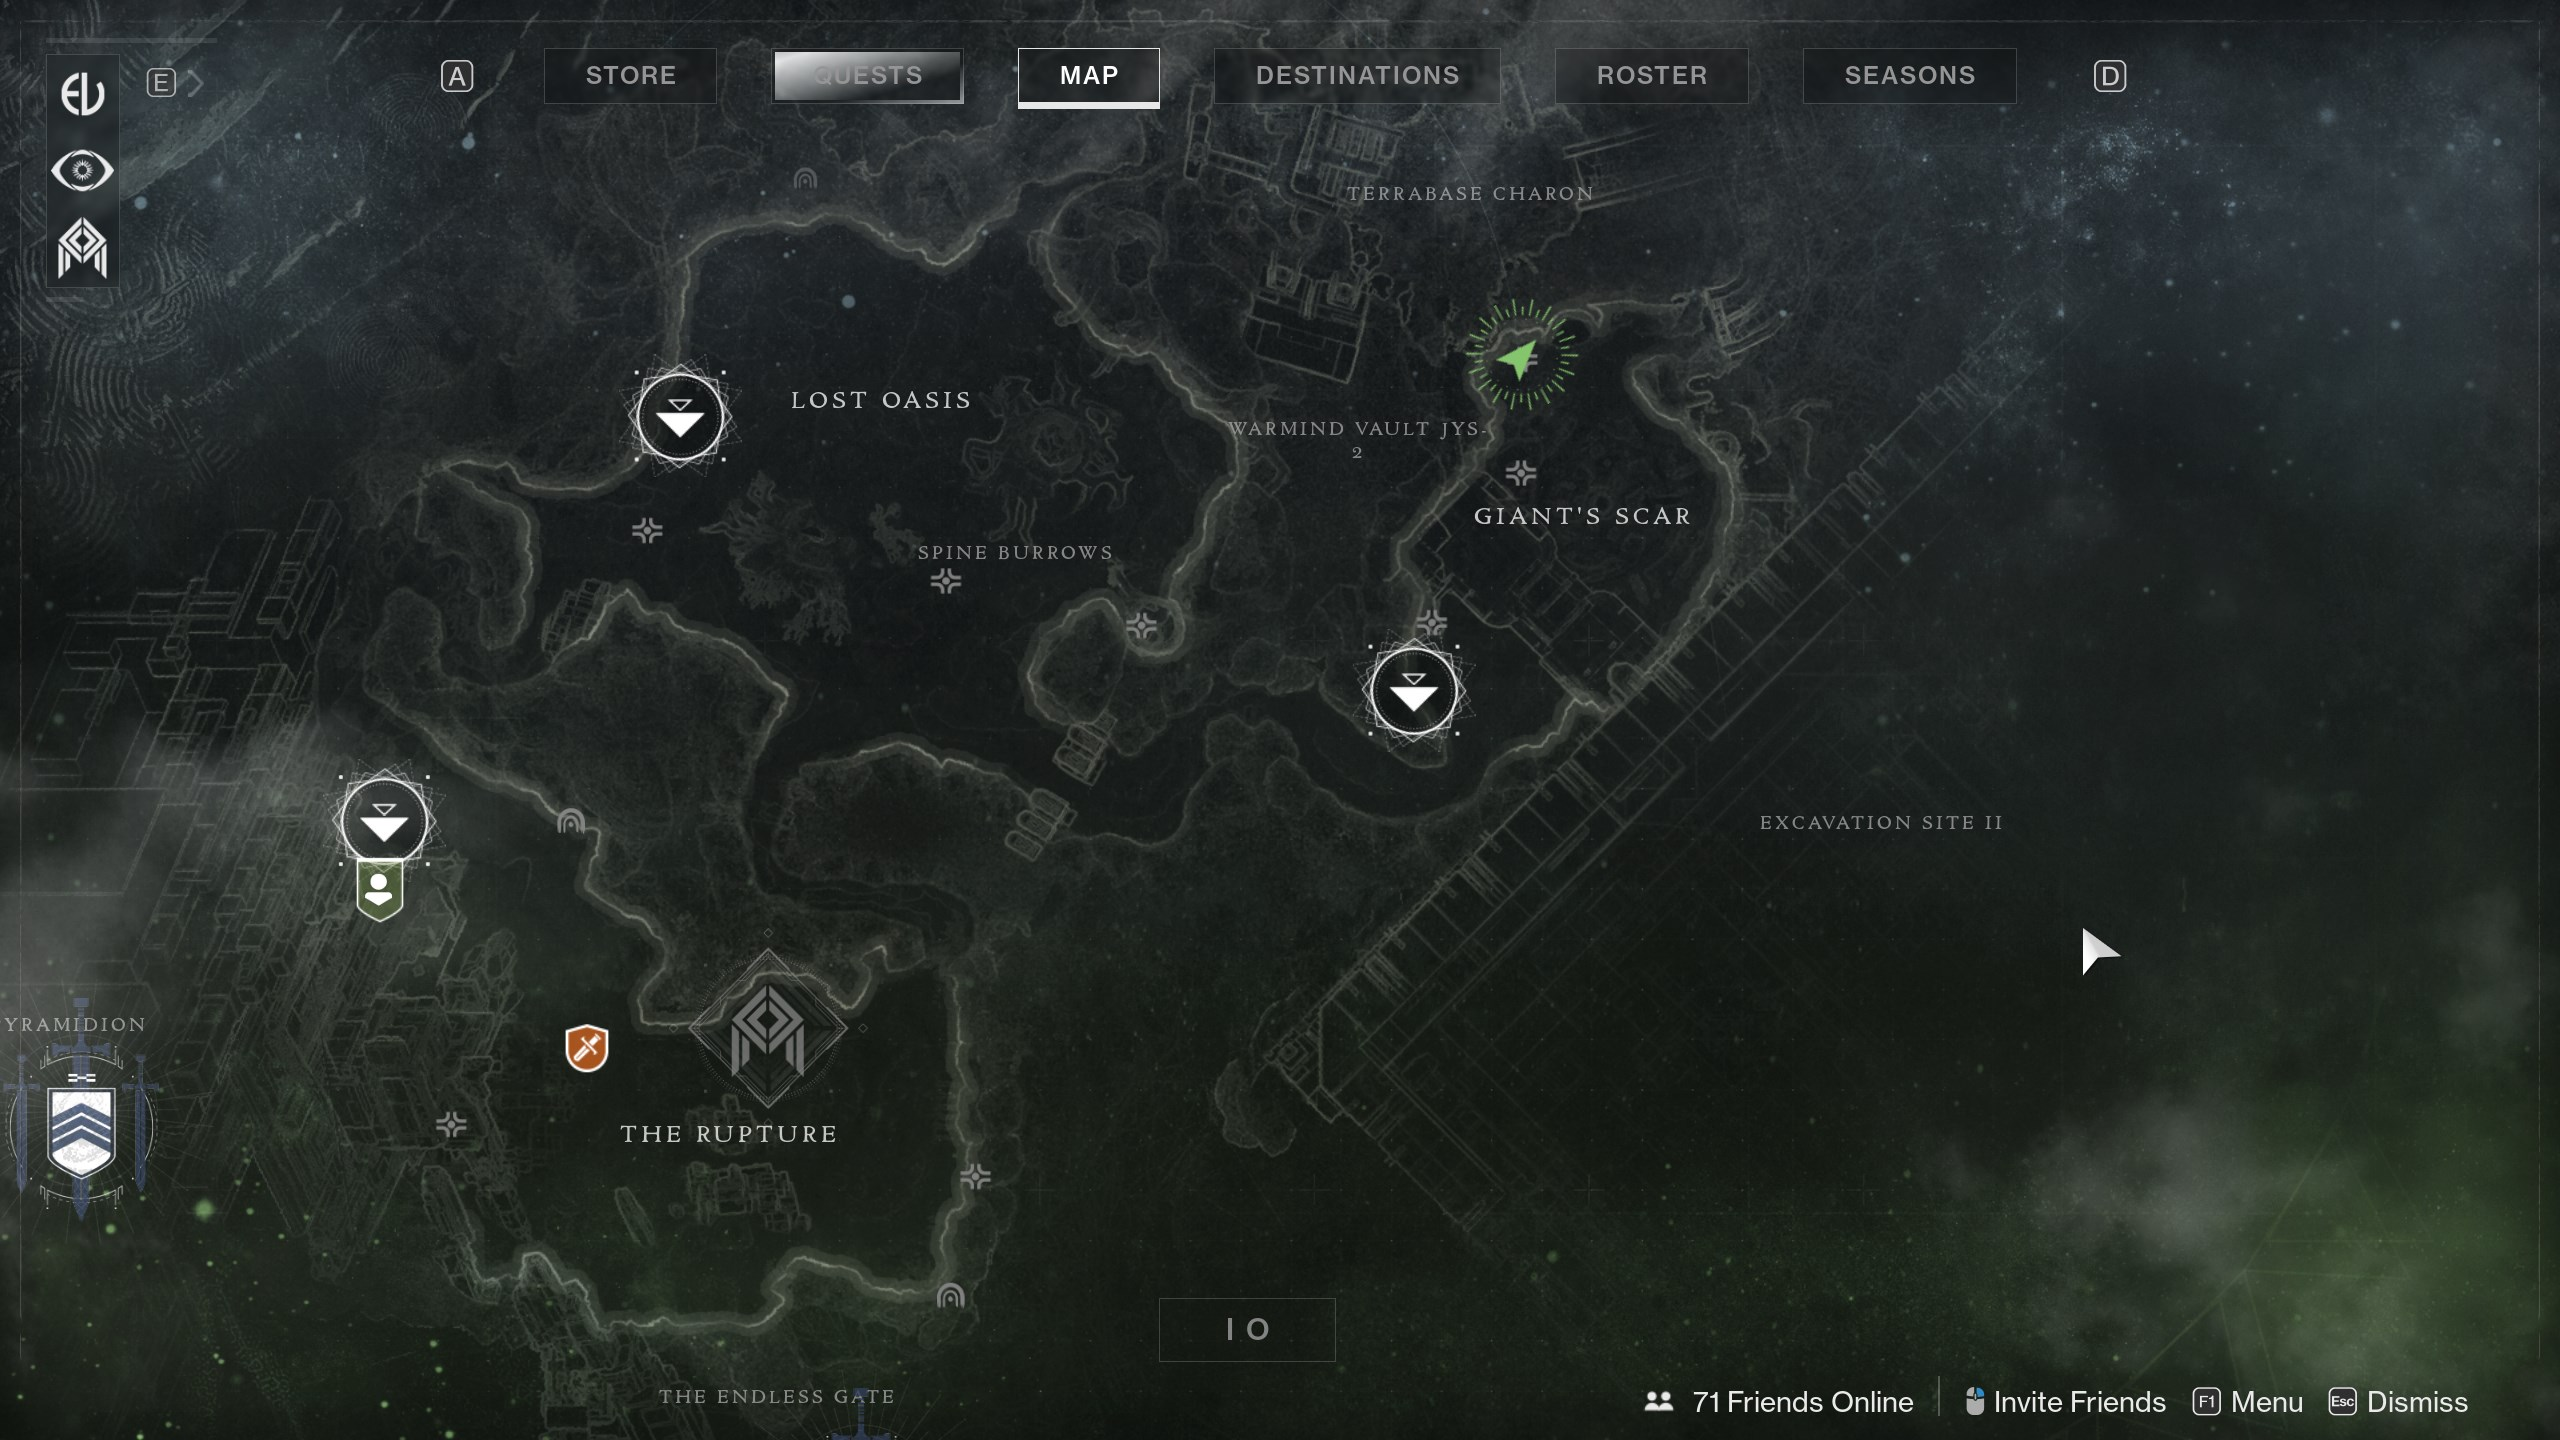 Xur's location and wares for april 3, 2020 - destiny 2